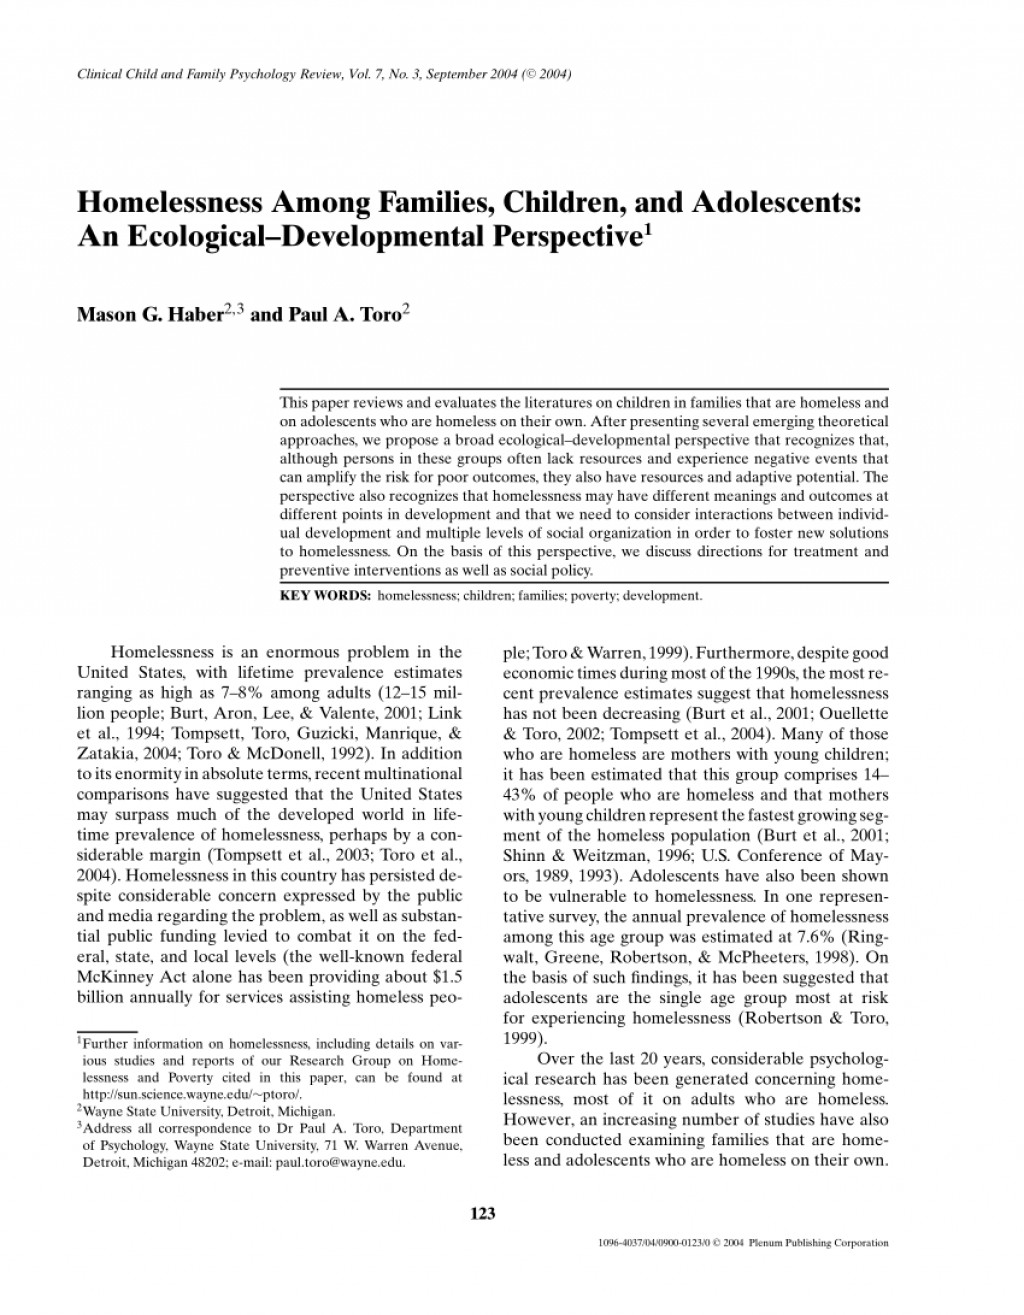 002 Research Paper On Homelessness Singular Article In The United States Sample Large